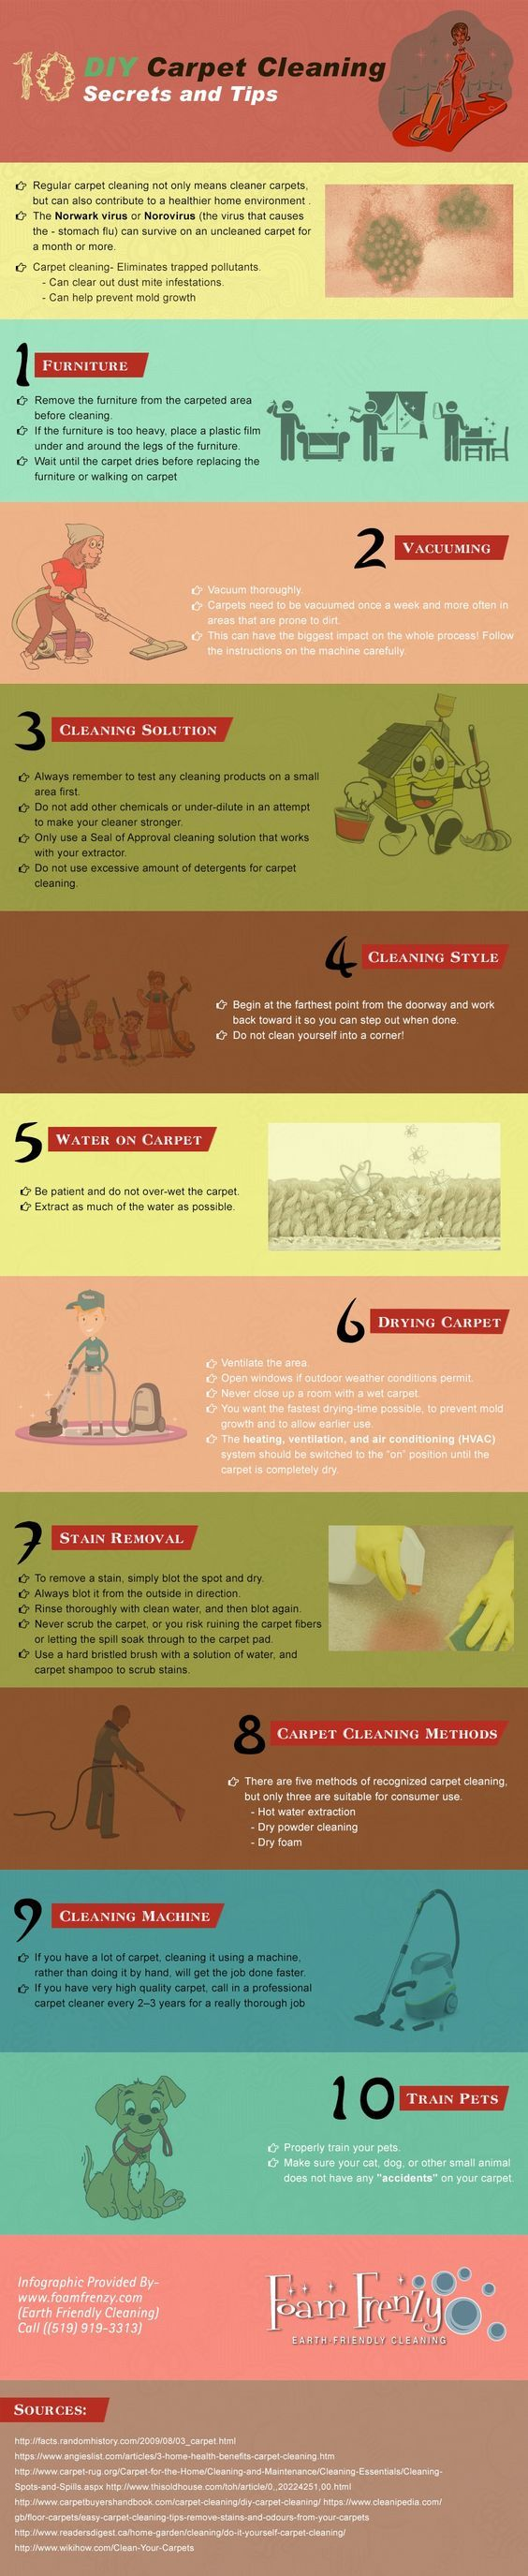 10 must know diy carpet cleaning secrets tips